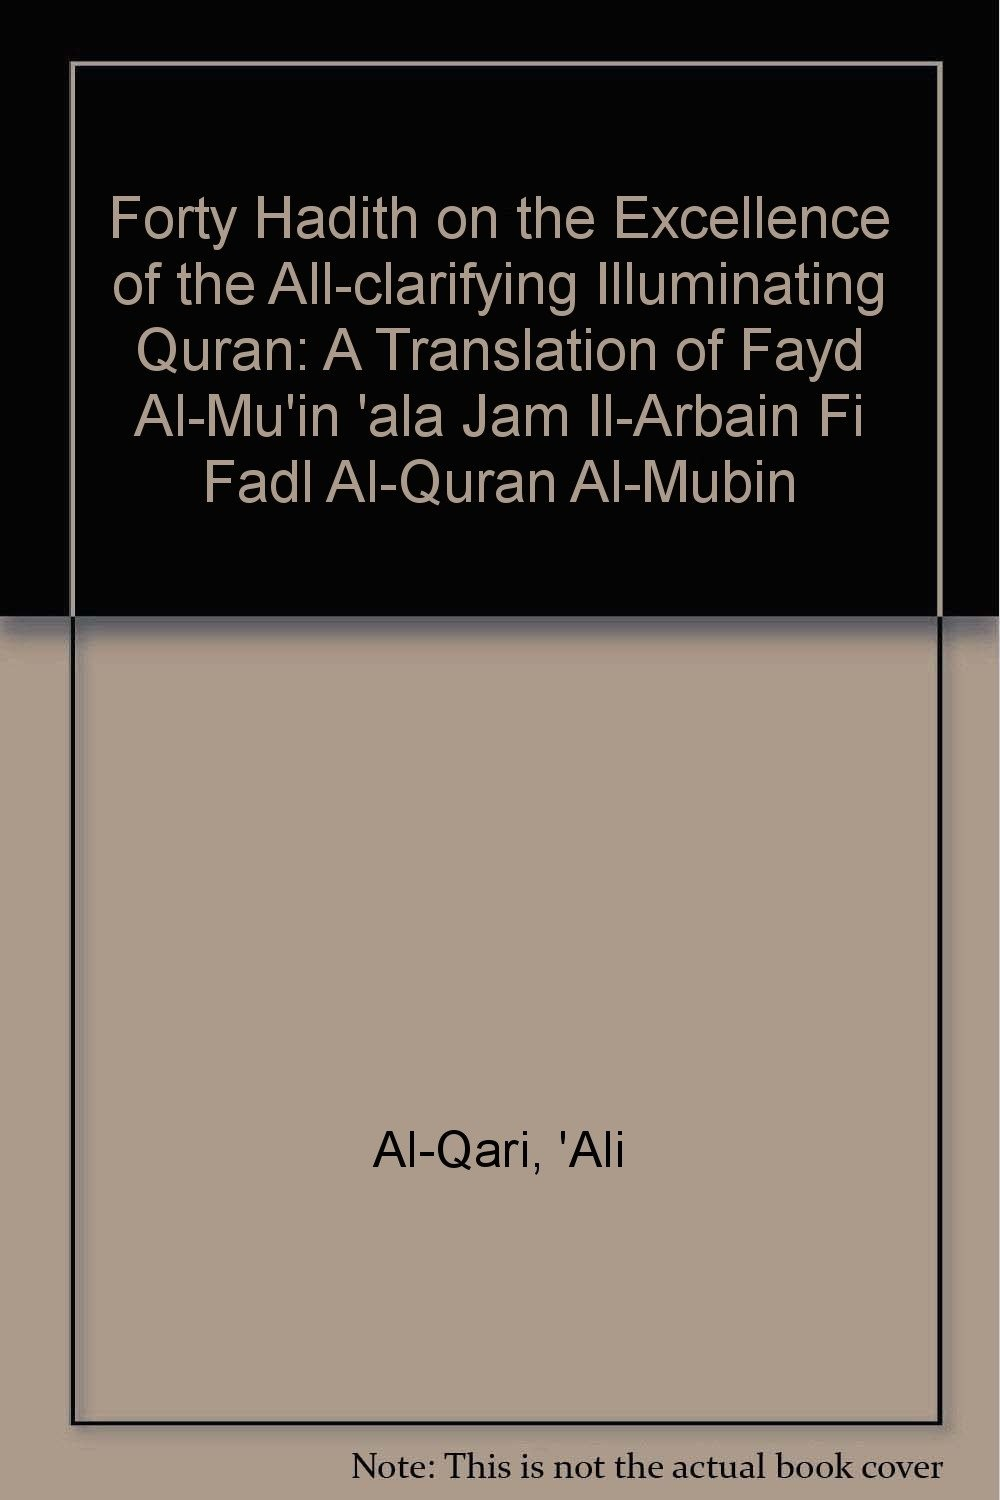 Forty Hadith on the Excellence of the All-clarifying Illuminating Quran -  Audio CD